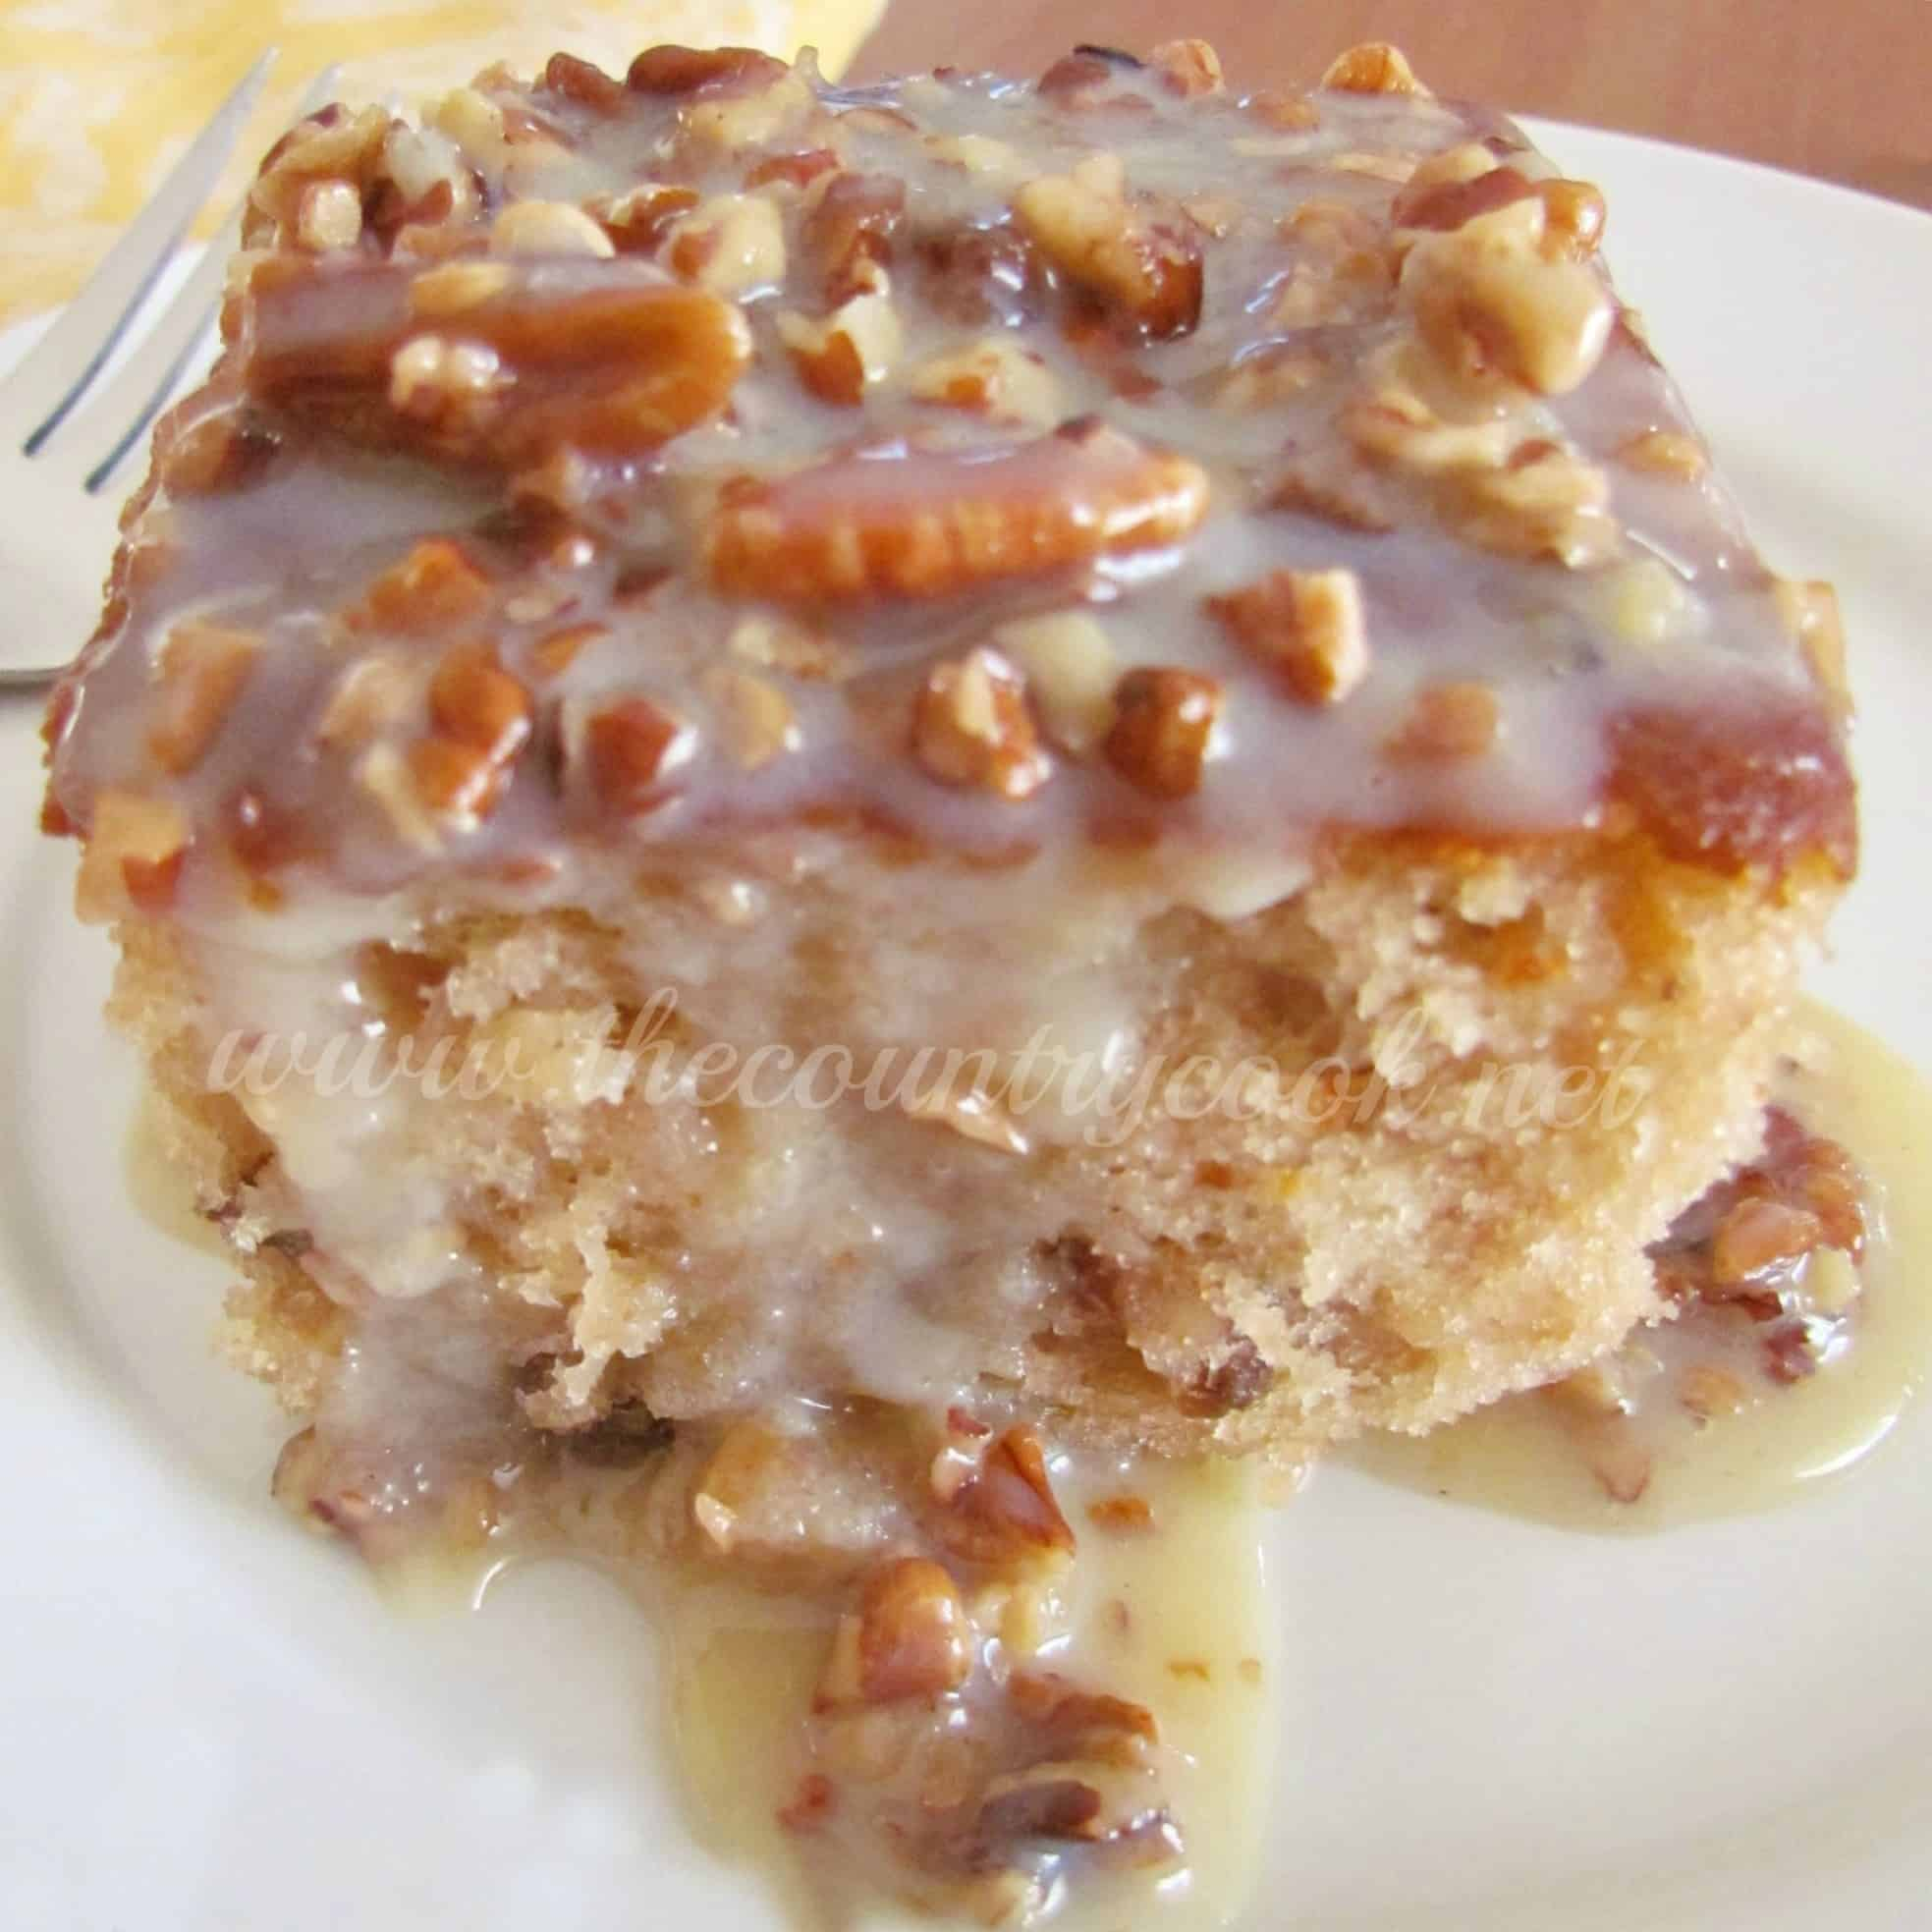 Cake Recipe With Coconut Pecan Frosting In The Batter